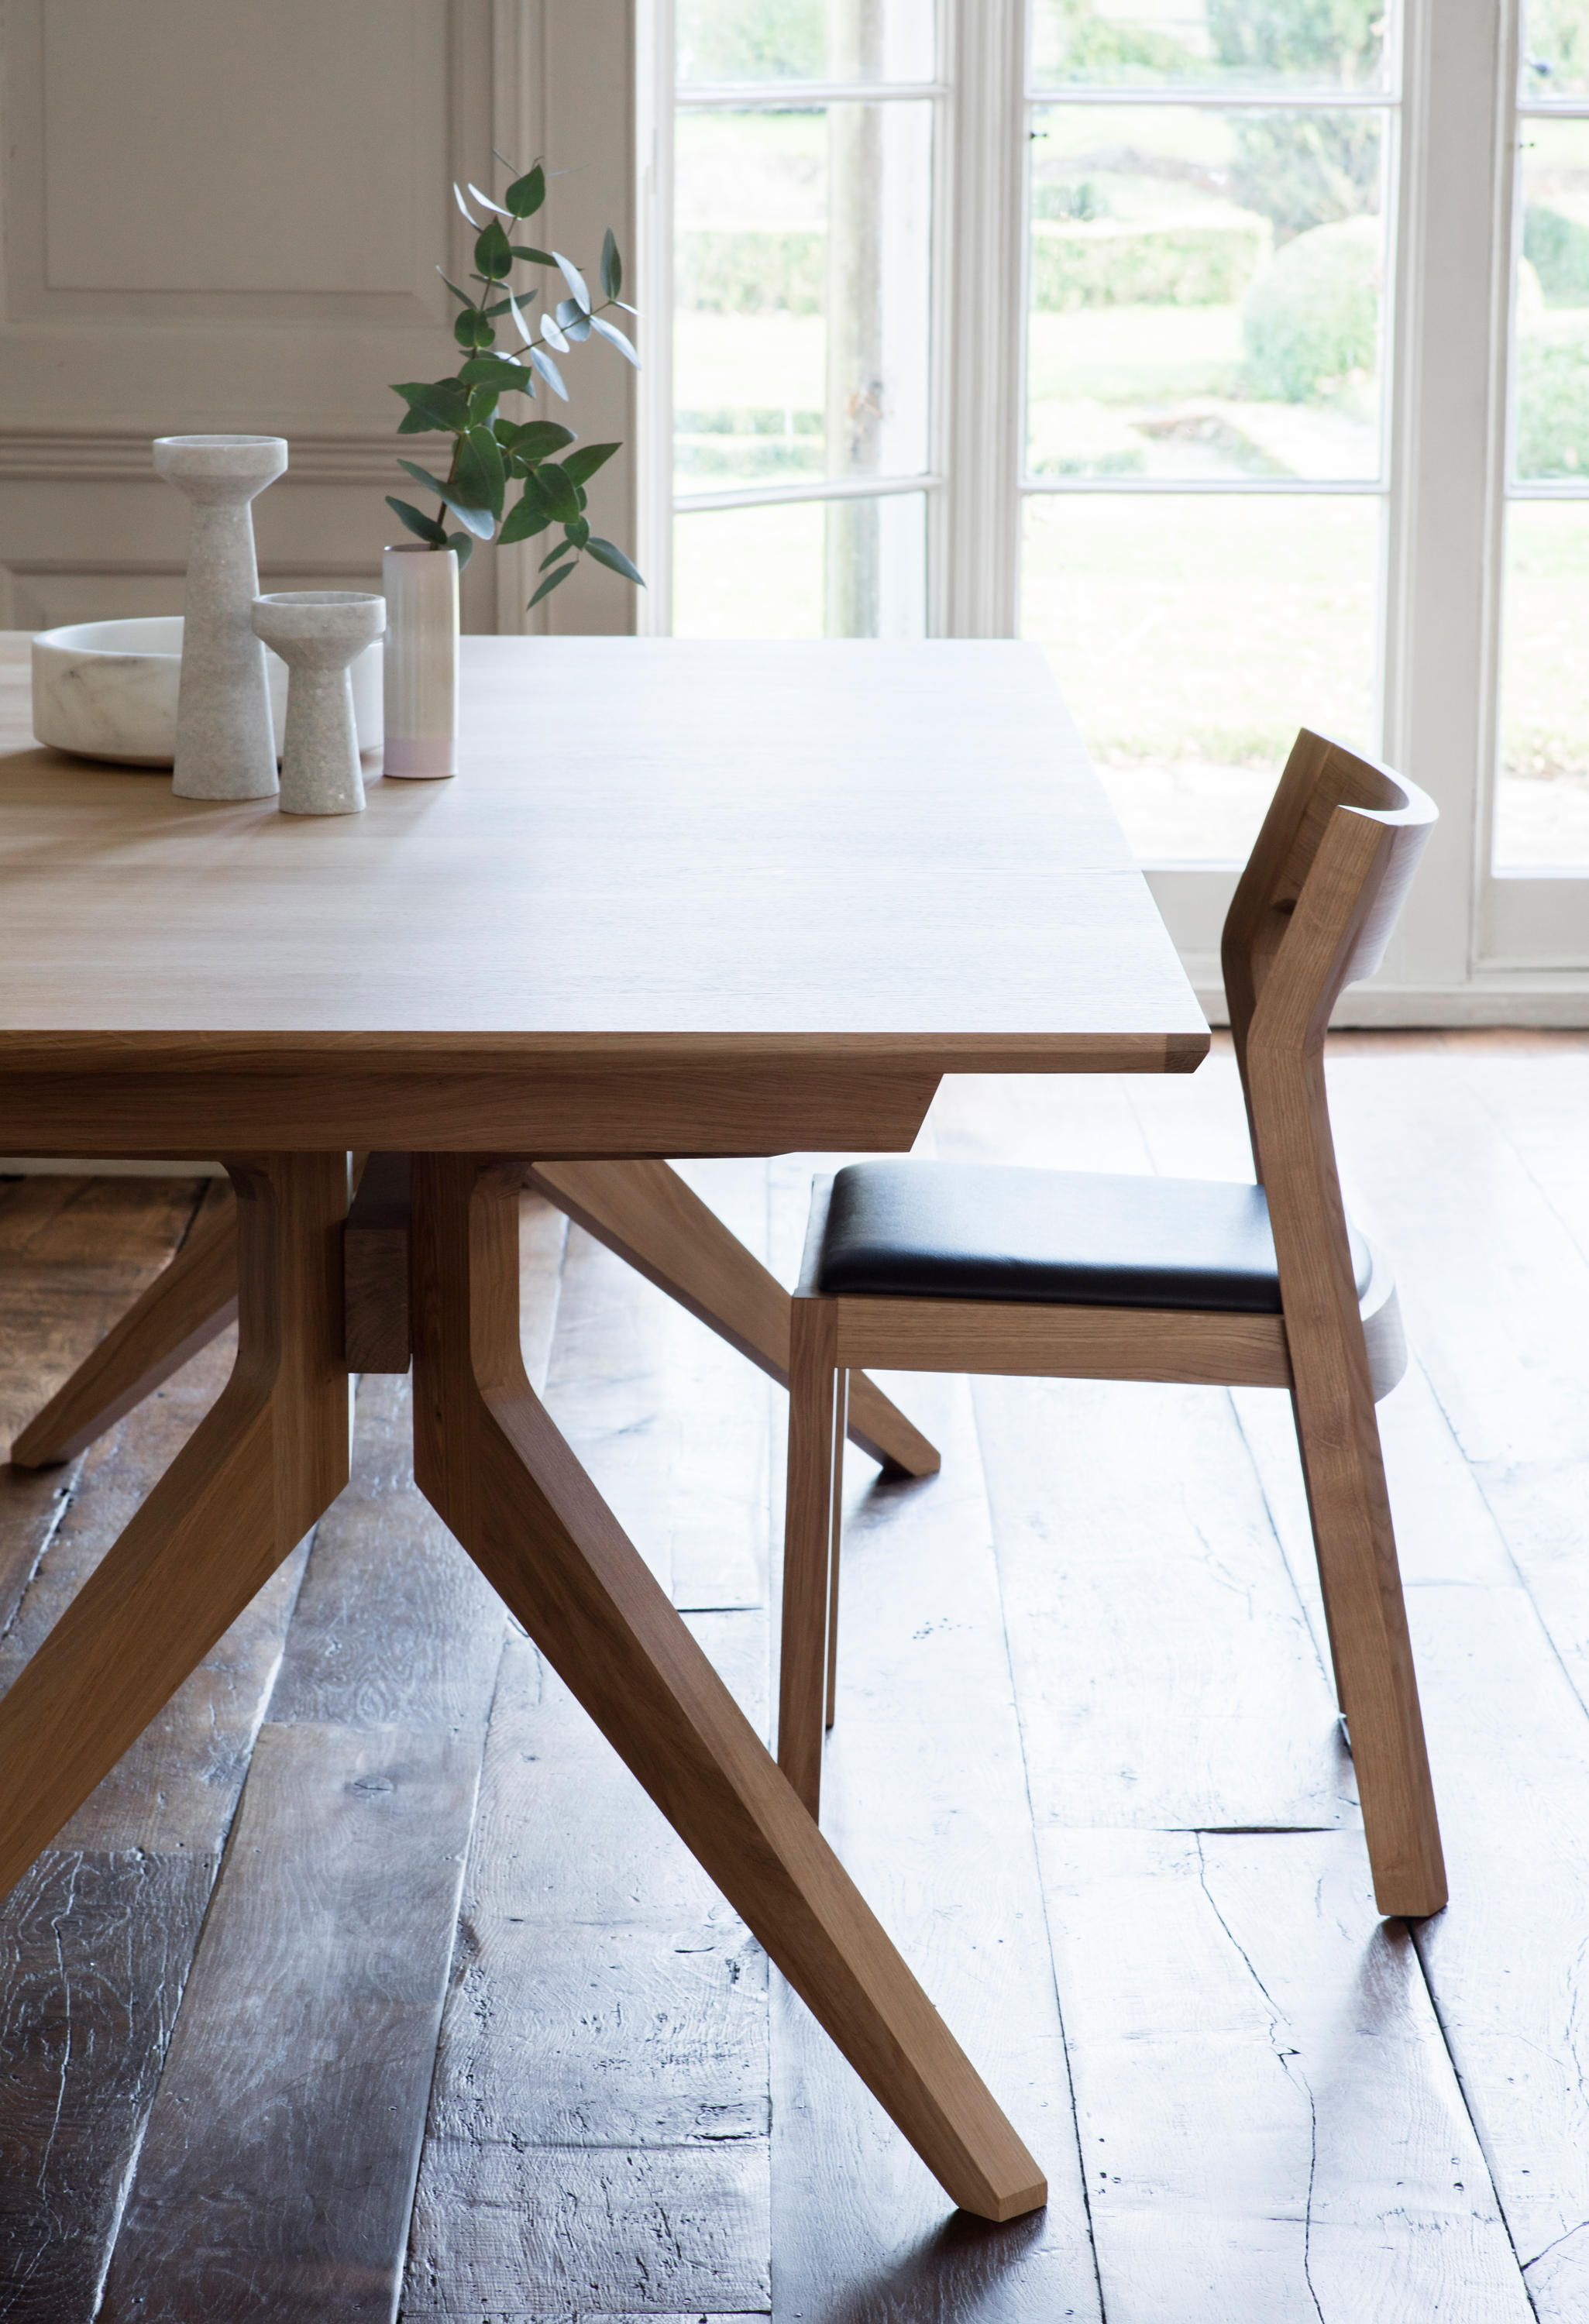 CROSS EXTENDING TABLE Designer Conference tables from Case